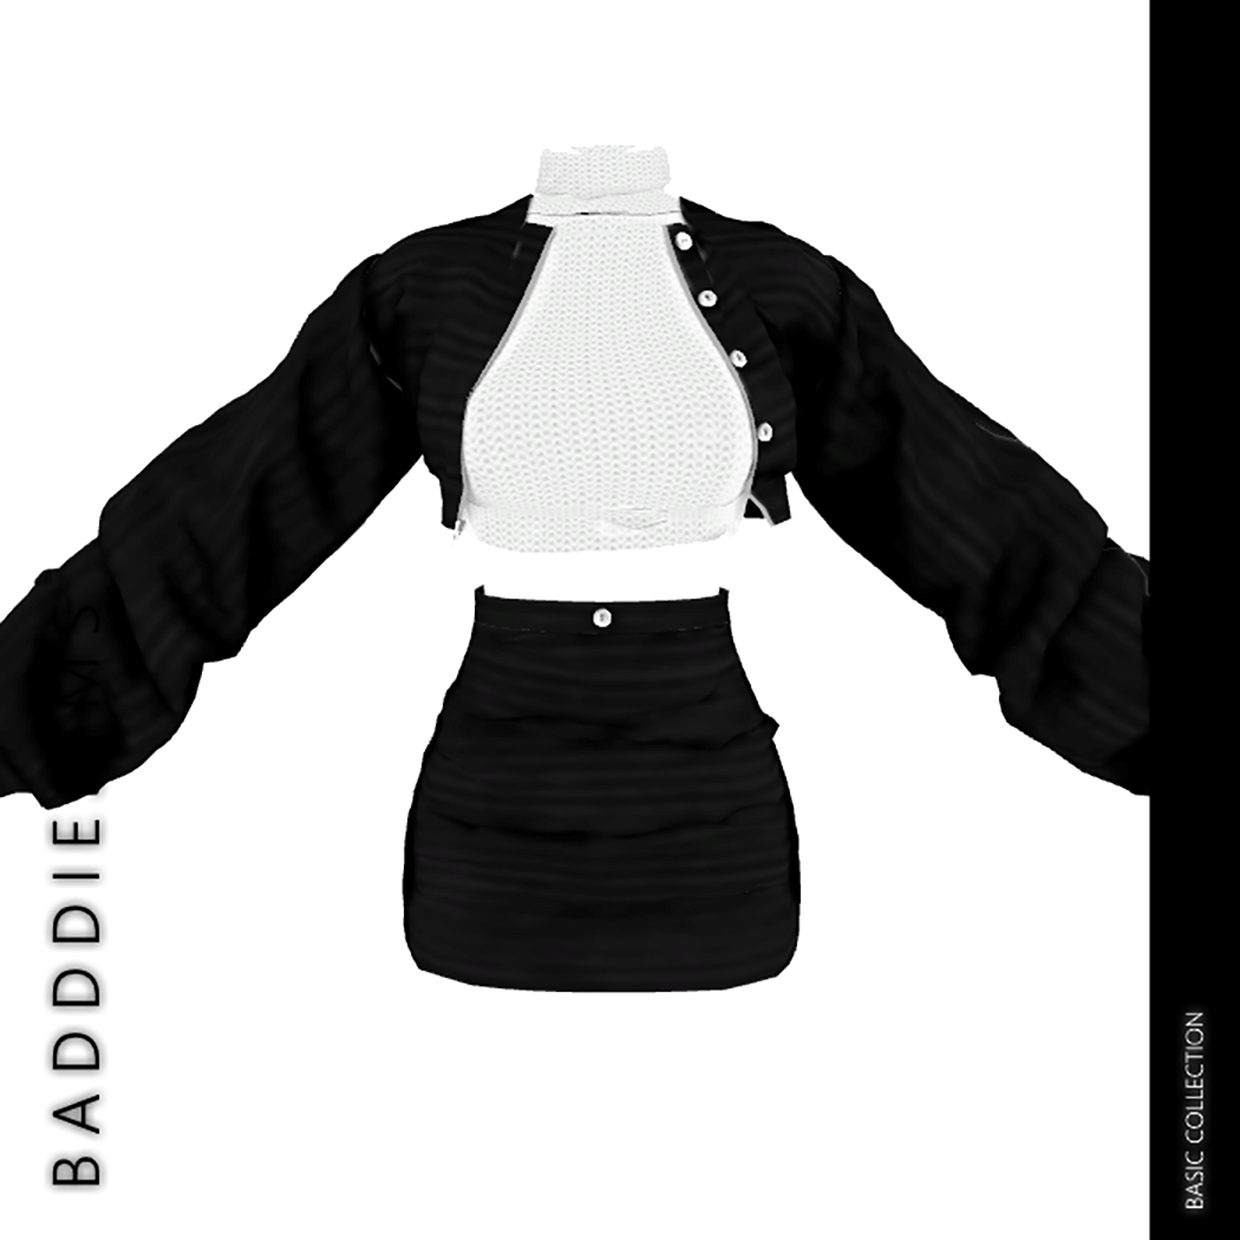 BASIC COLLECTION CROOKED SET by BadddieSims